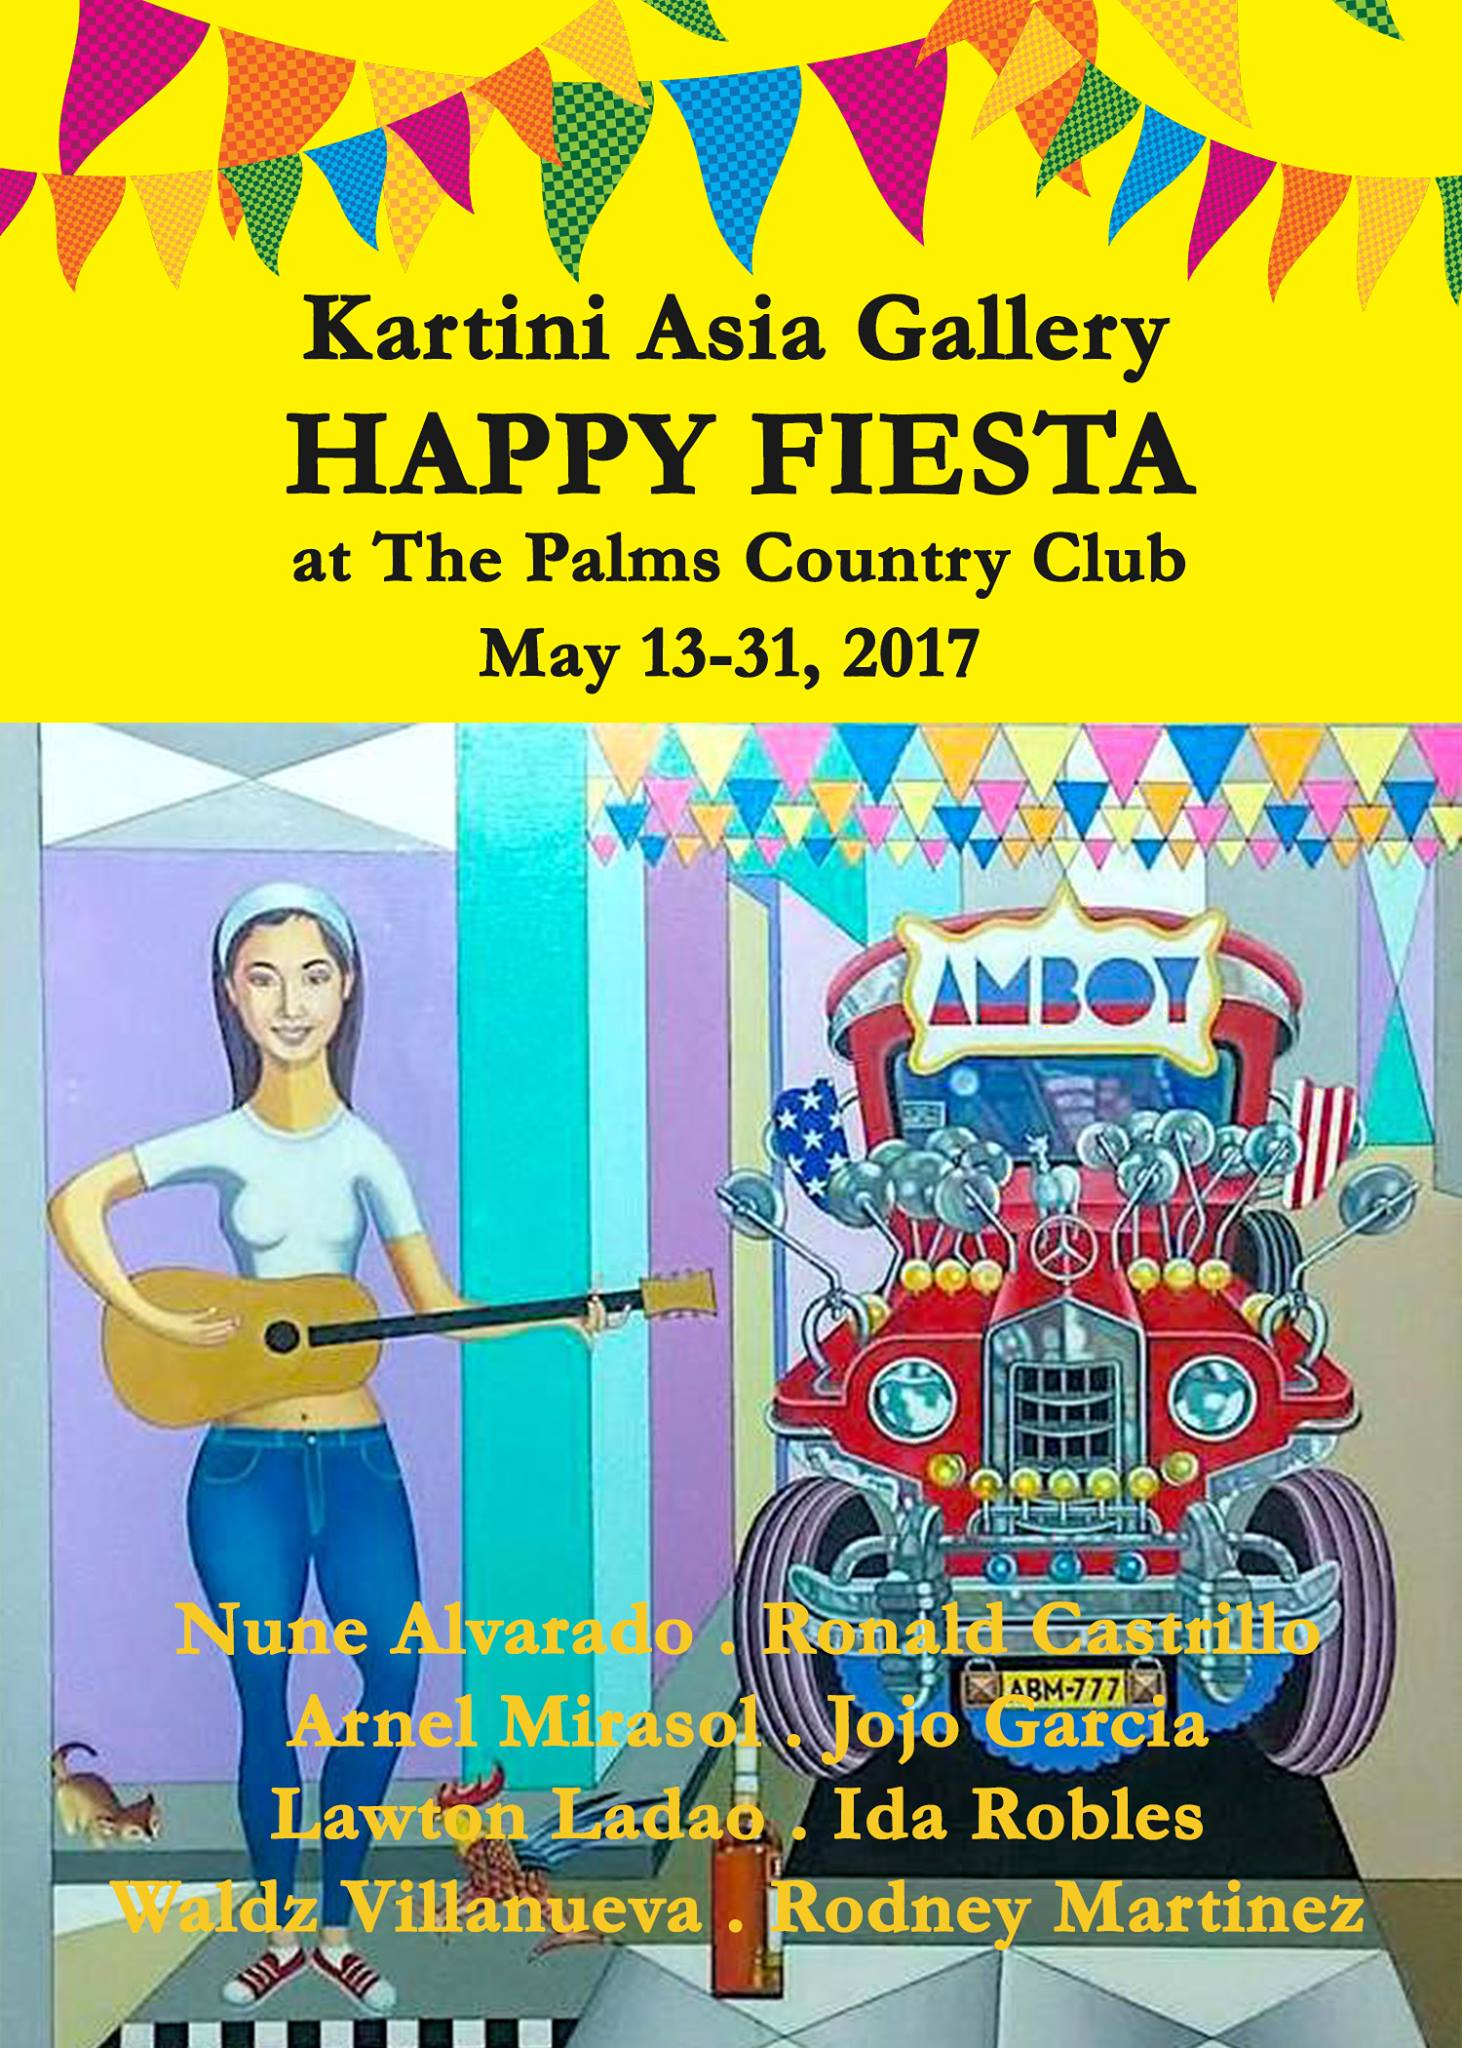 "Nina Malvar May 12 · HAPPY FIESTA on MOTHER'S DAY! At the Palms Country Club Laguna Drive, Filinvest City, Alabang Celebrate Mother's Day in a colorful visual feast as Kartini Asia Gallery showcases the works of Mission Artists Philippines in an art exhibit ""HAPPY FIESTA"" at the Palms Country Club. Exhibit run starts on Saturday May 13 in time with Mother's Day on Sunday May 14 up through May 31. Marvel at the geniuses of Arnel Mirasol, Nune Alvarado, Ronald Castrillo, Rodney Martinez, Waldz Villanueva, Jojo Garcia, Ida Robles and Lawton Ladao. Jake Catah, Jerry Dean and Mon Villanueva are participating artists. Inquiries at the Palms: 771- 7171 / 697- 6191 Kartini Asia Gallery: 807- 4356 / 8077579 / 09266899014 — with Jerry e Dean and Aileen Beltran Garcia."